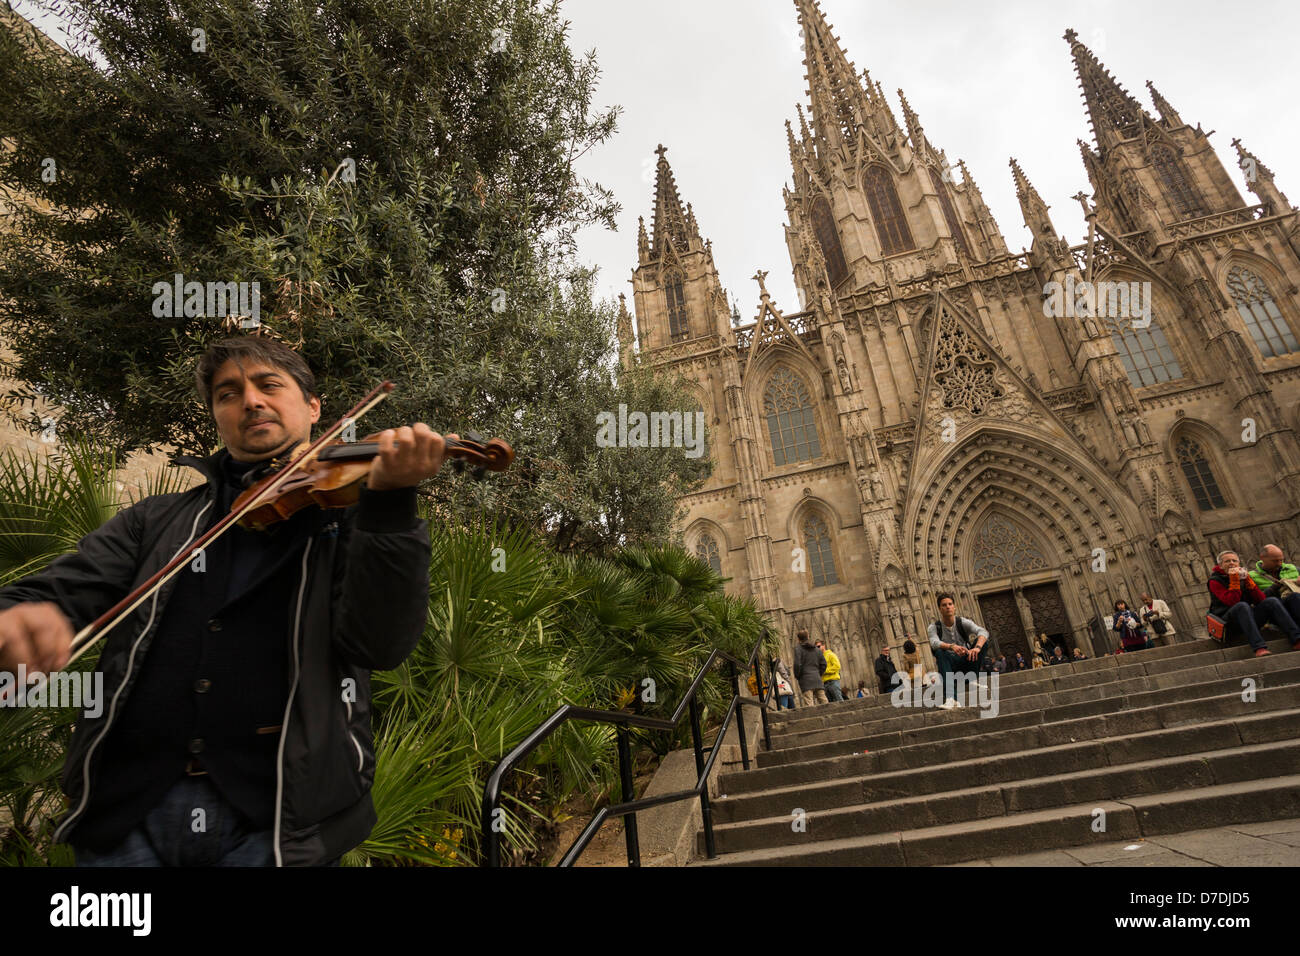 Street musician in front of La Catedral - Barcelona, Spain. - Stock Image